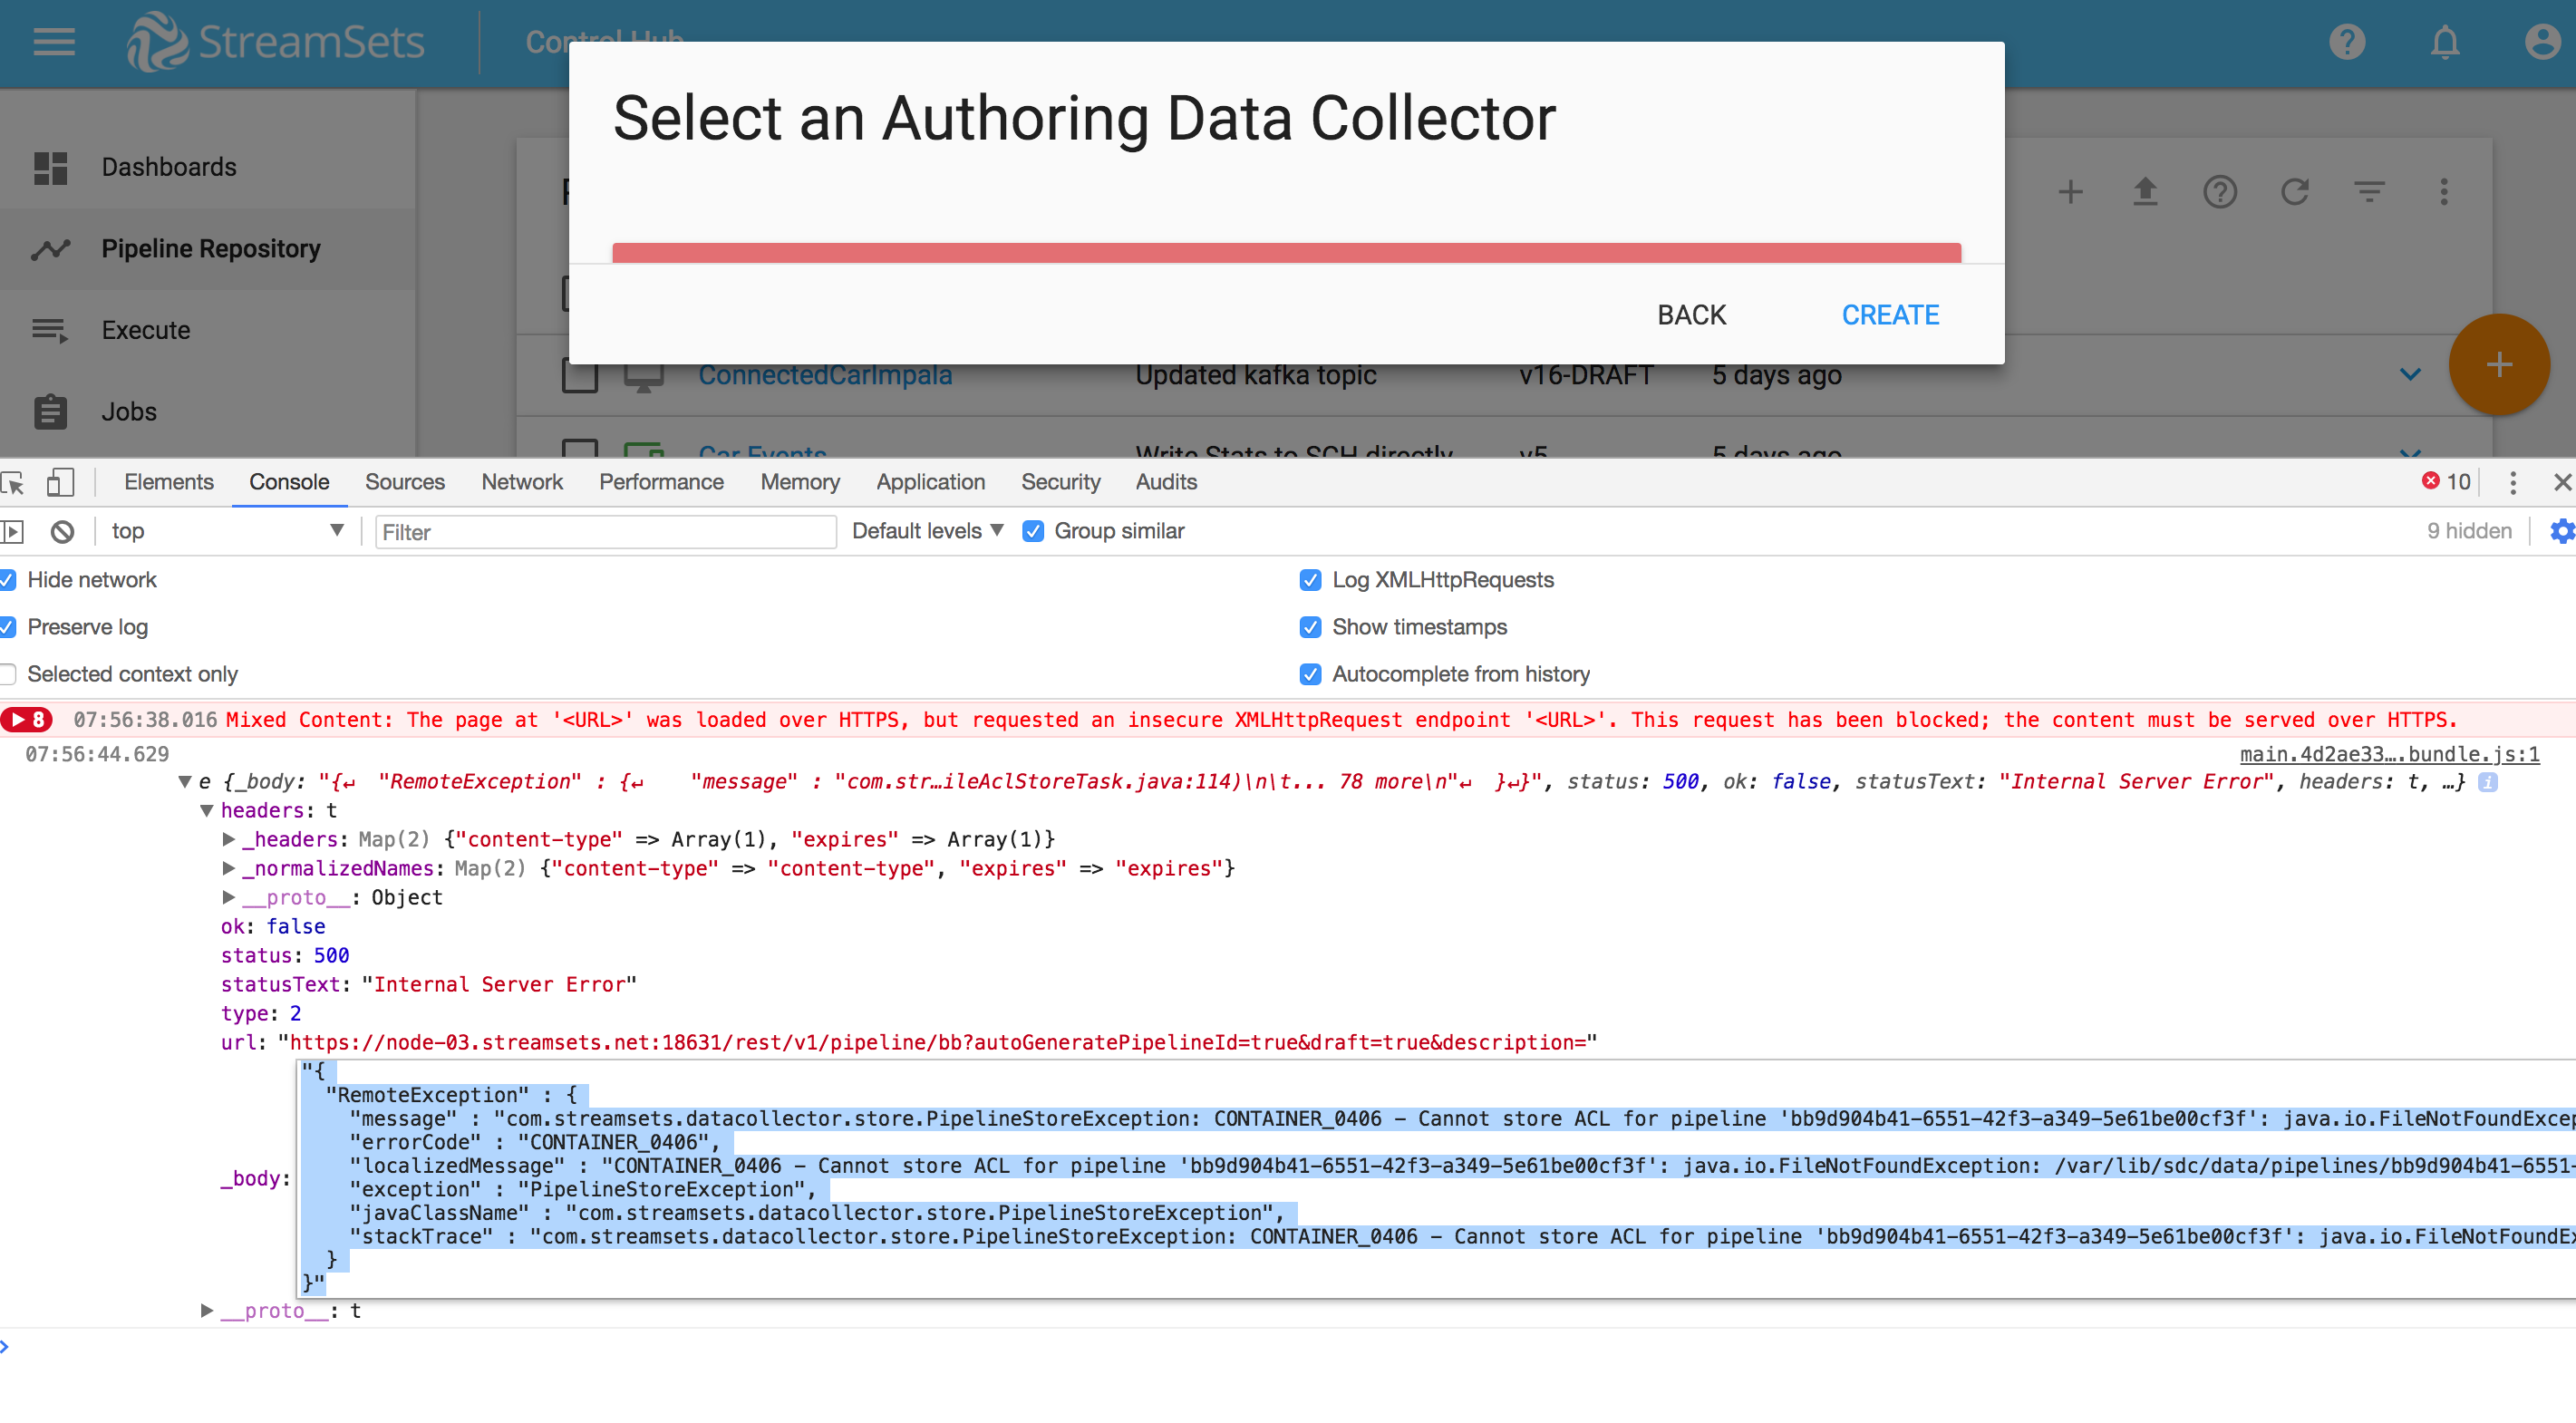 SDC-8629] Cannot create a pipeline: acl json-tmp (No such